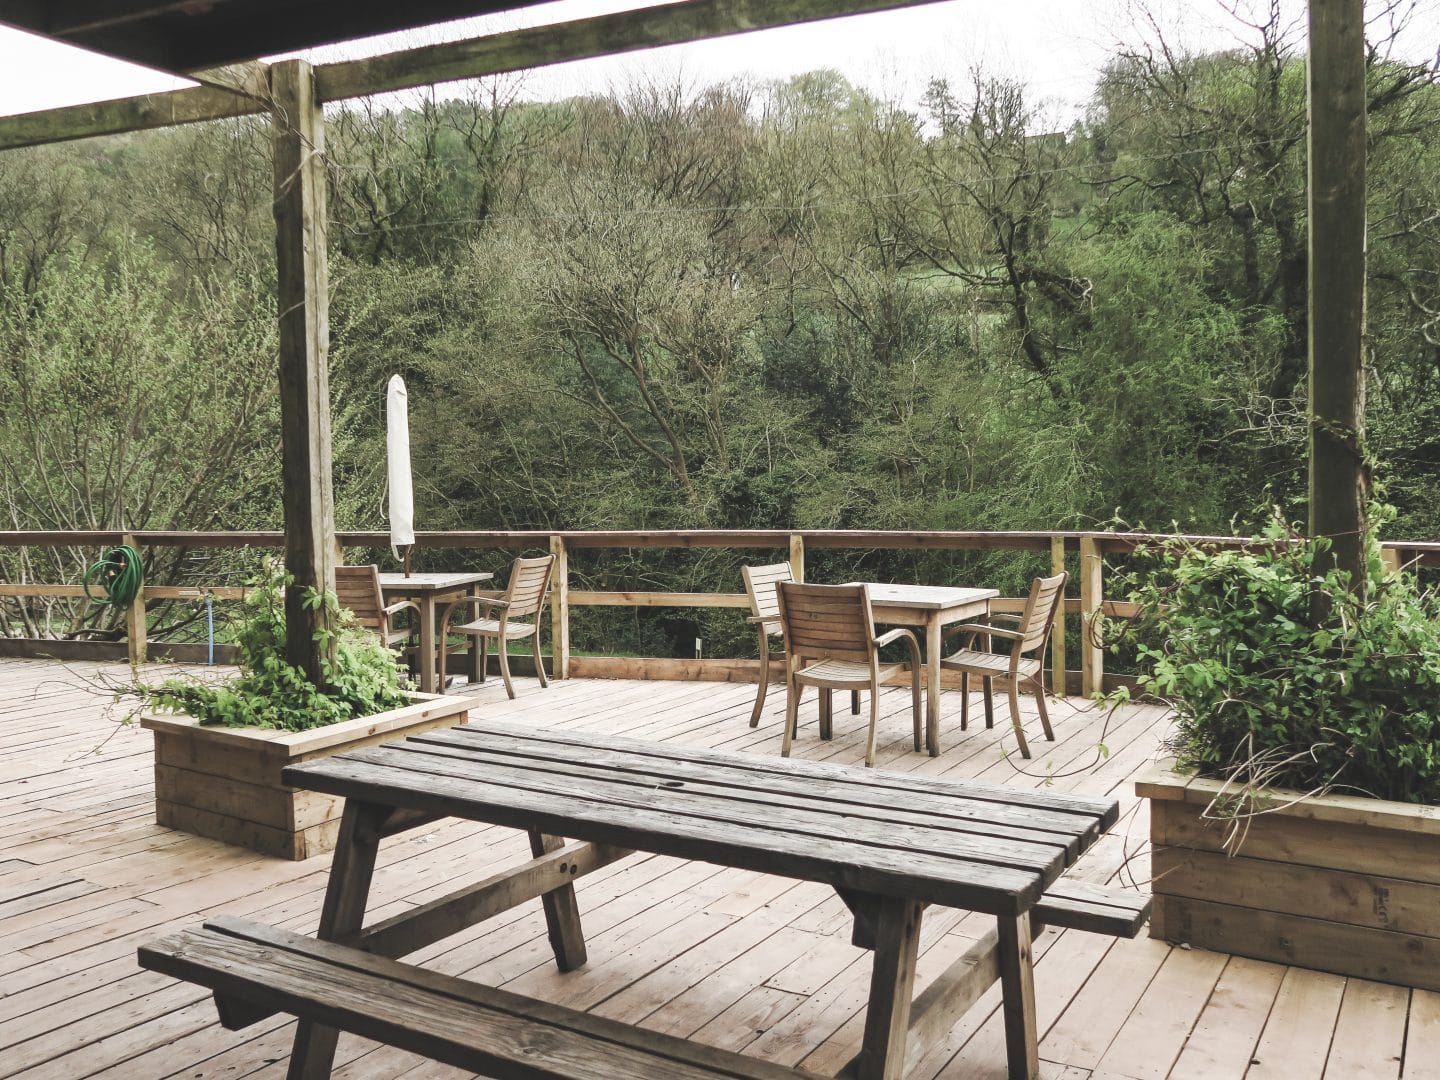 Dining Platform at Hidden Valley Yurts | Curiously Conscious